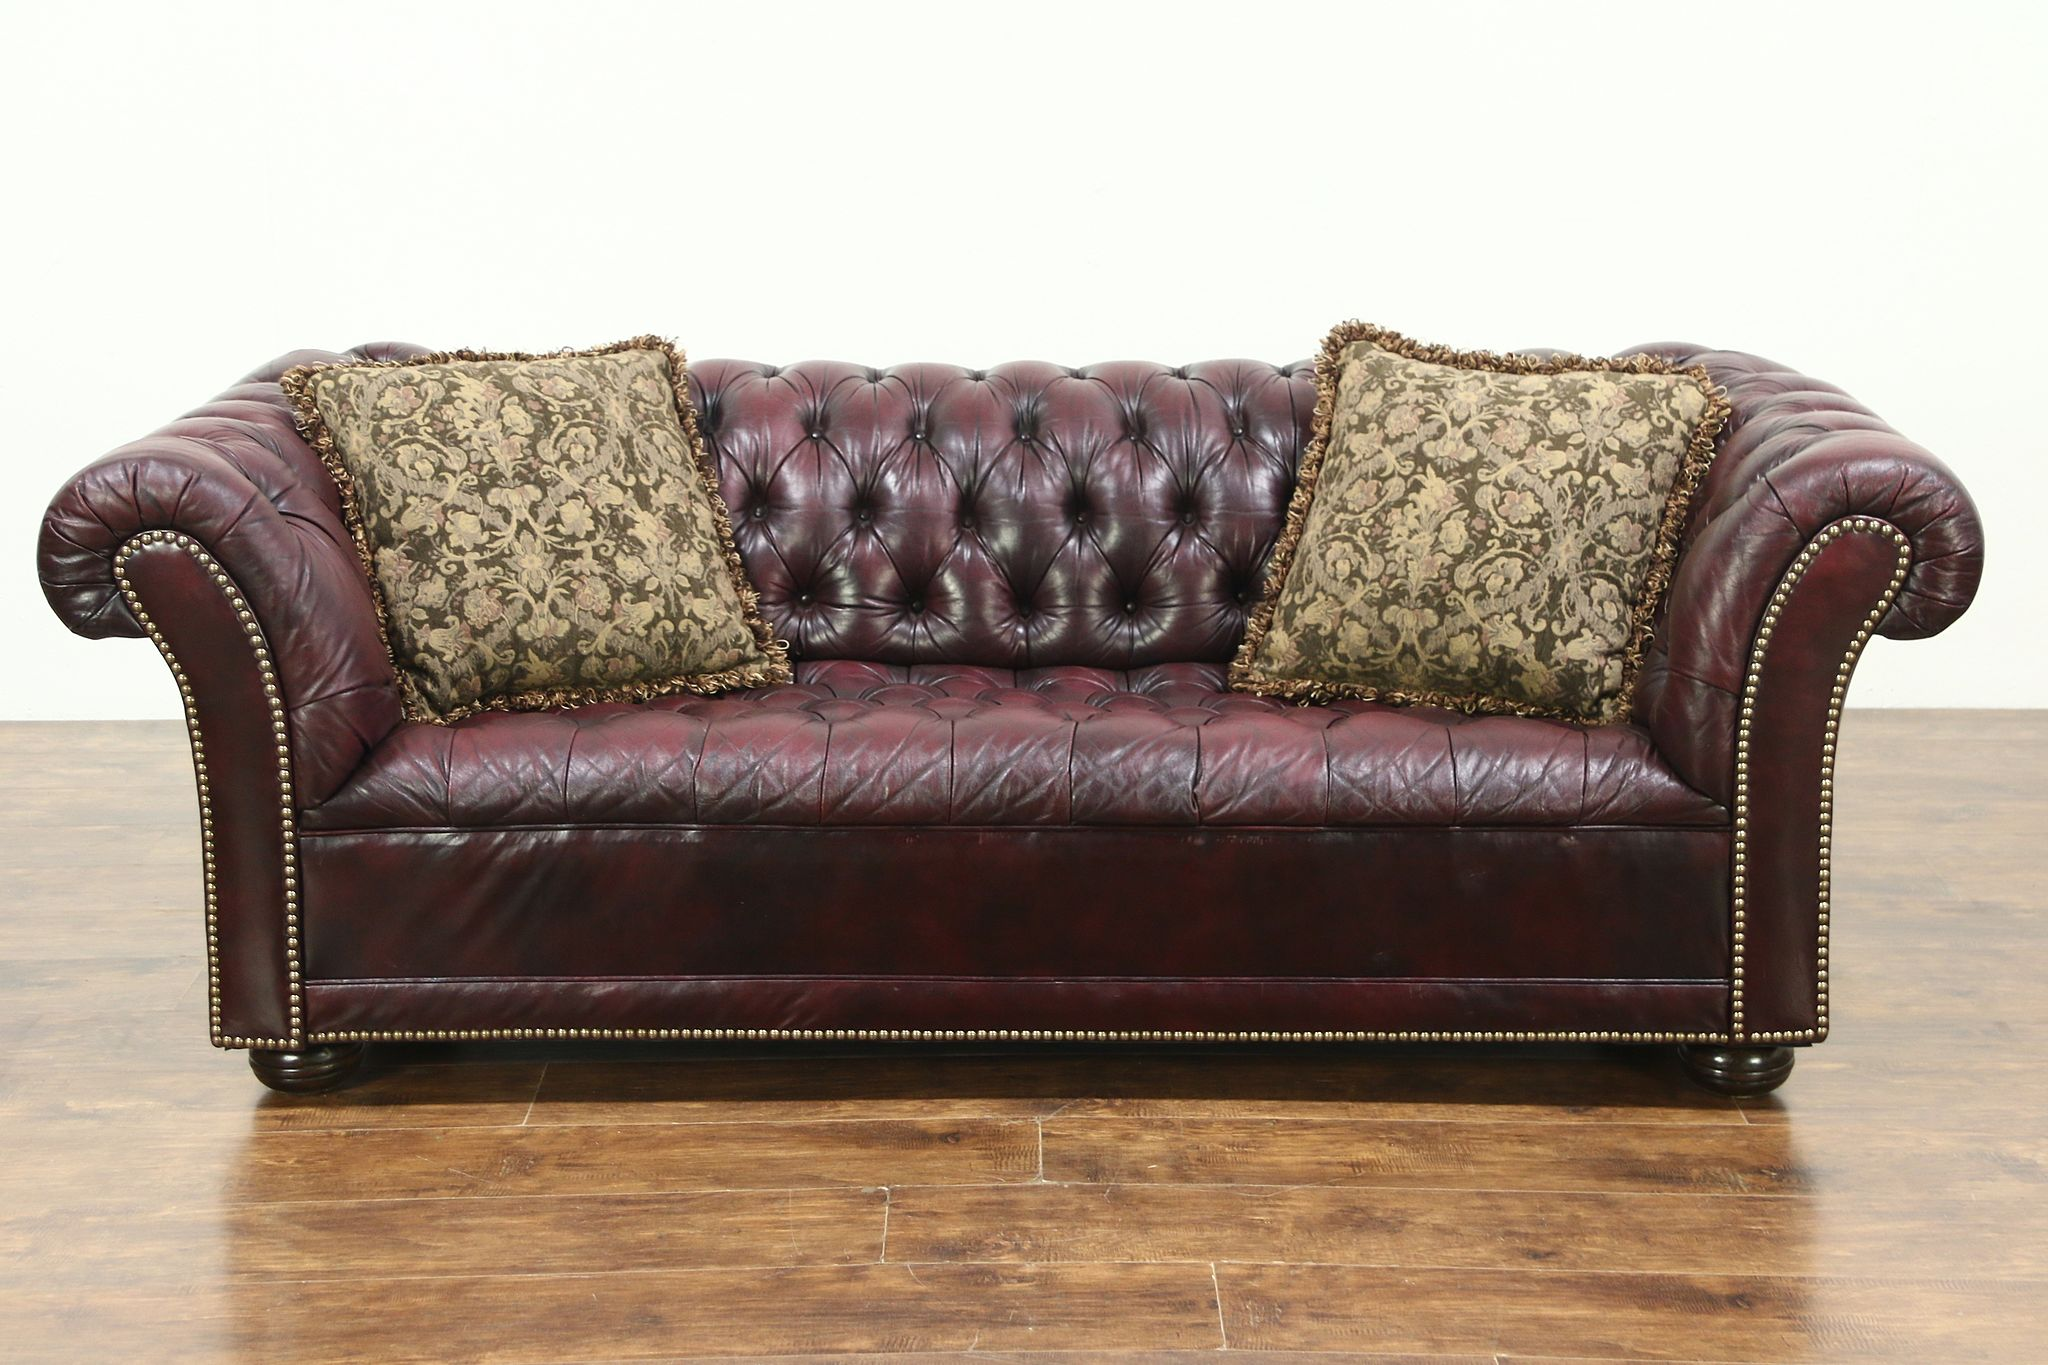 Chesterfield Leather Tufted Vintage Sofa Br Nailhead Trim